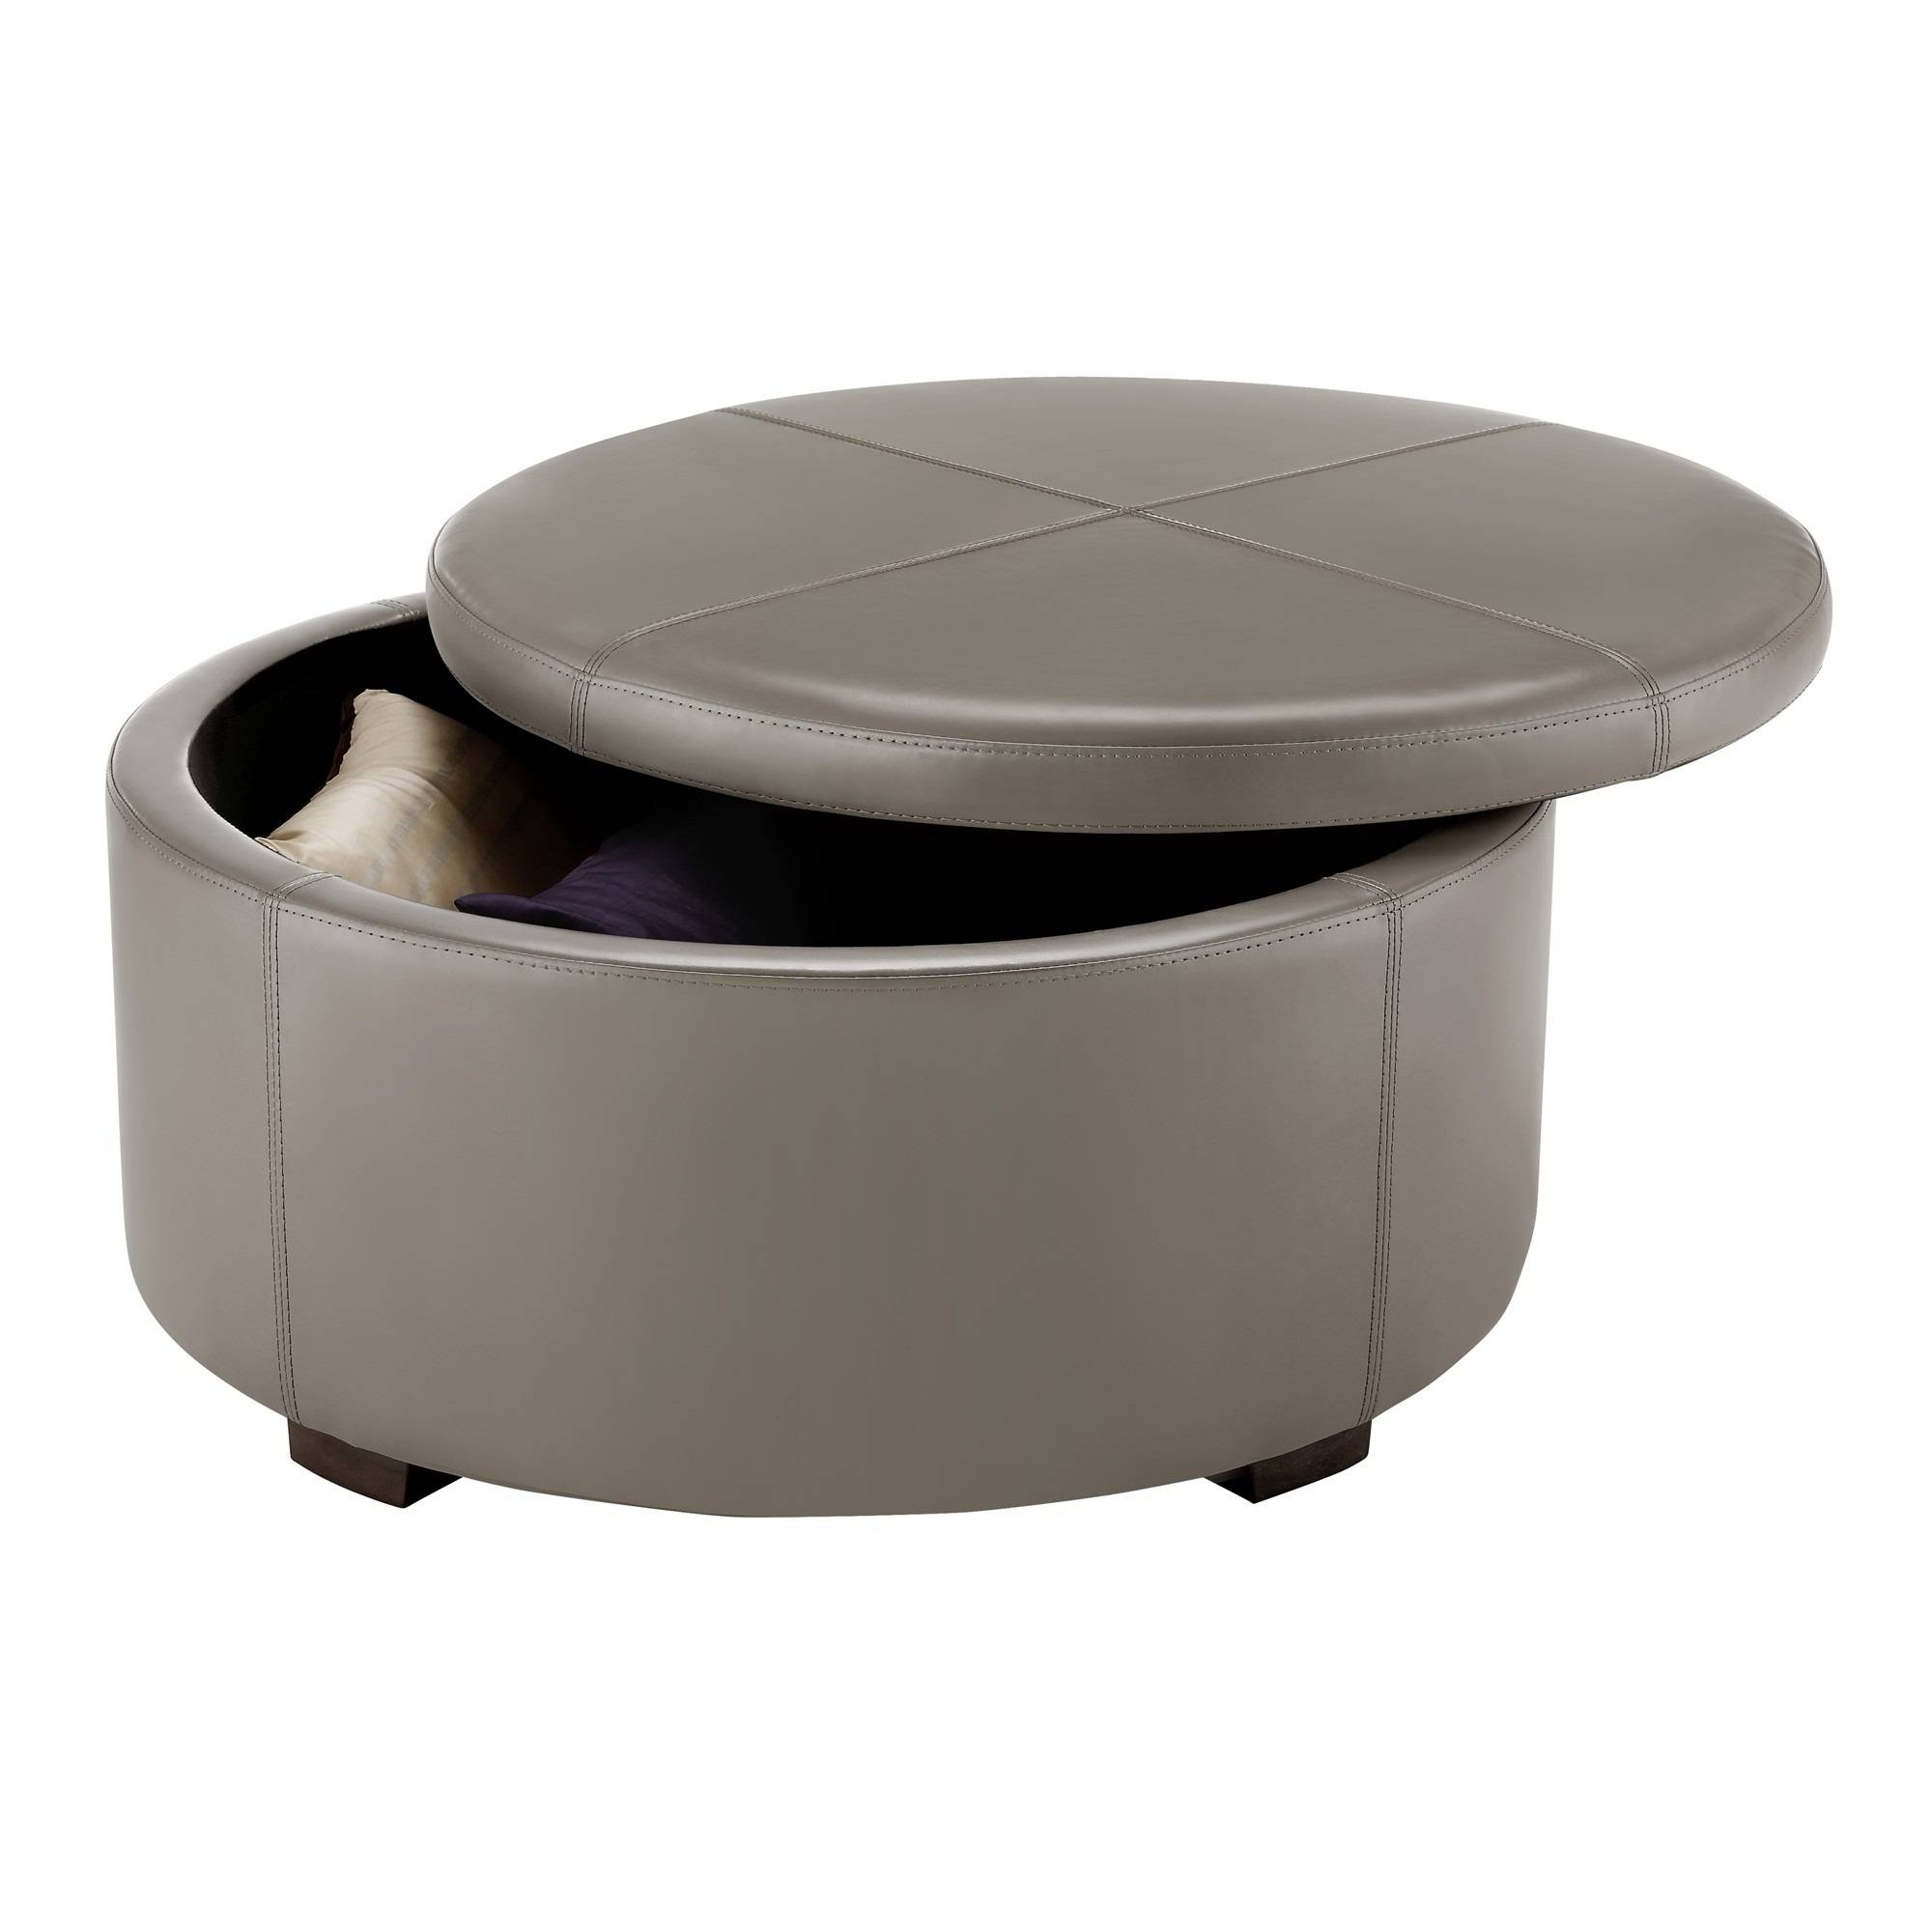 Small Round Leather Coffee Table Storage Ottoman Round Leather within Round Coffee Table Storages (Image 29 of 30)